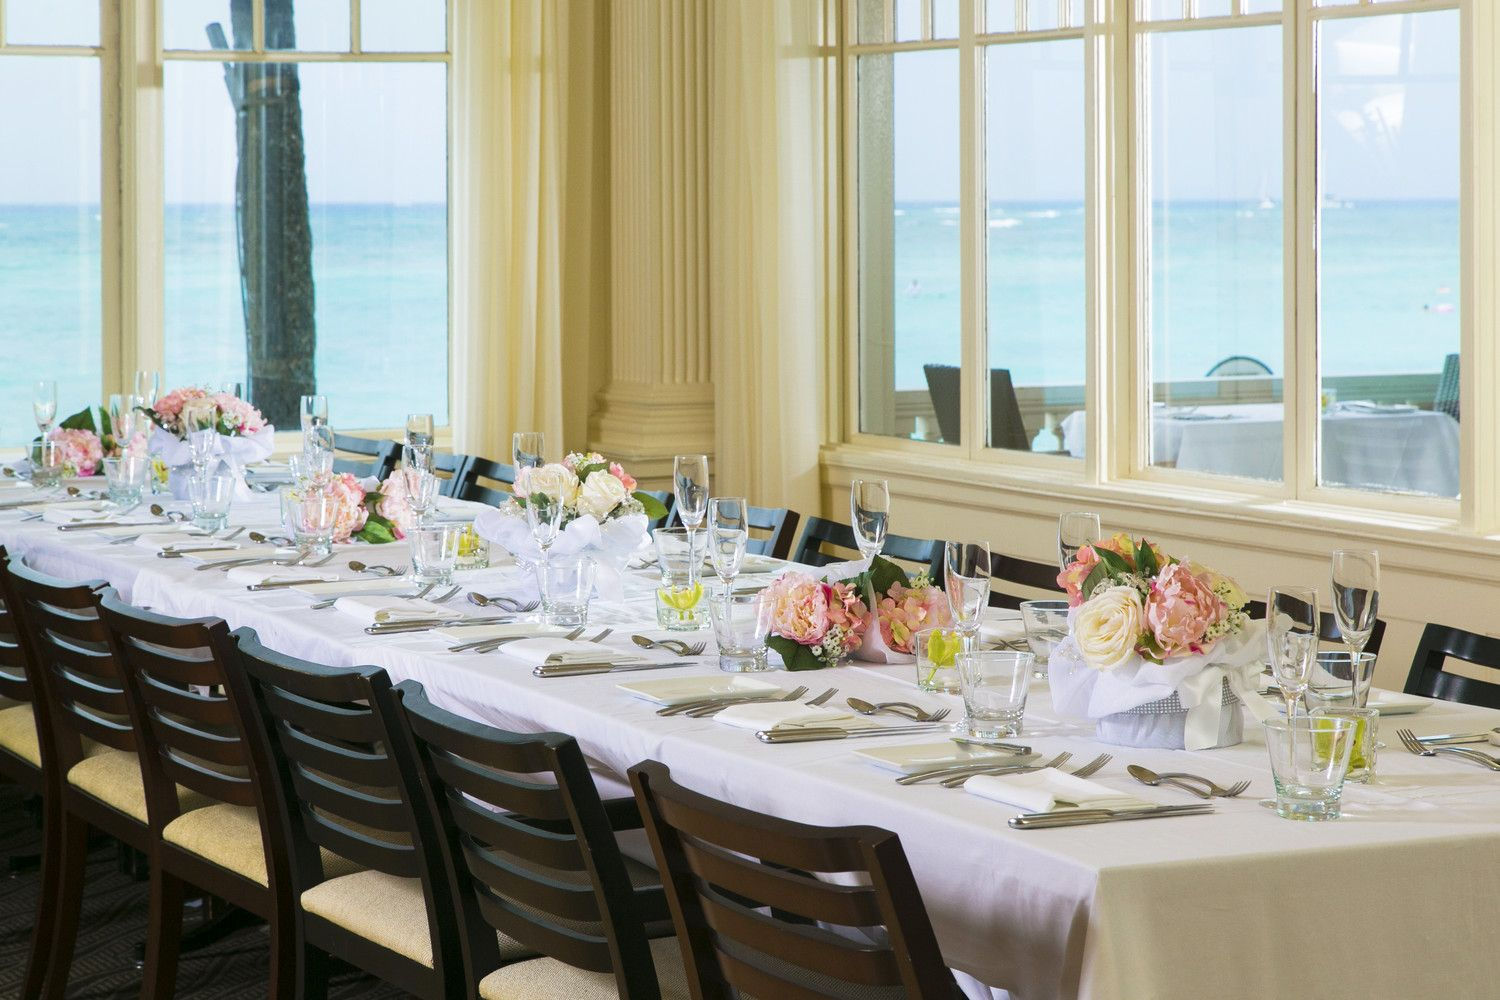 Moana Surfrider, A Westin Resort & Spa - Weddings